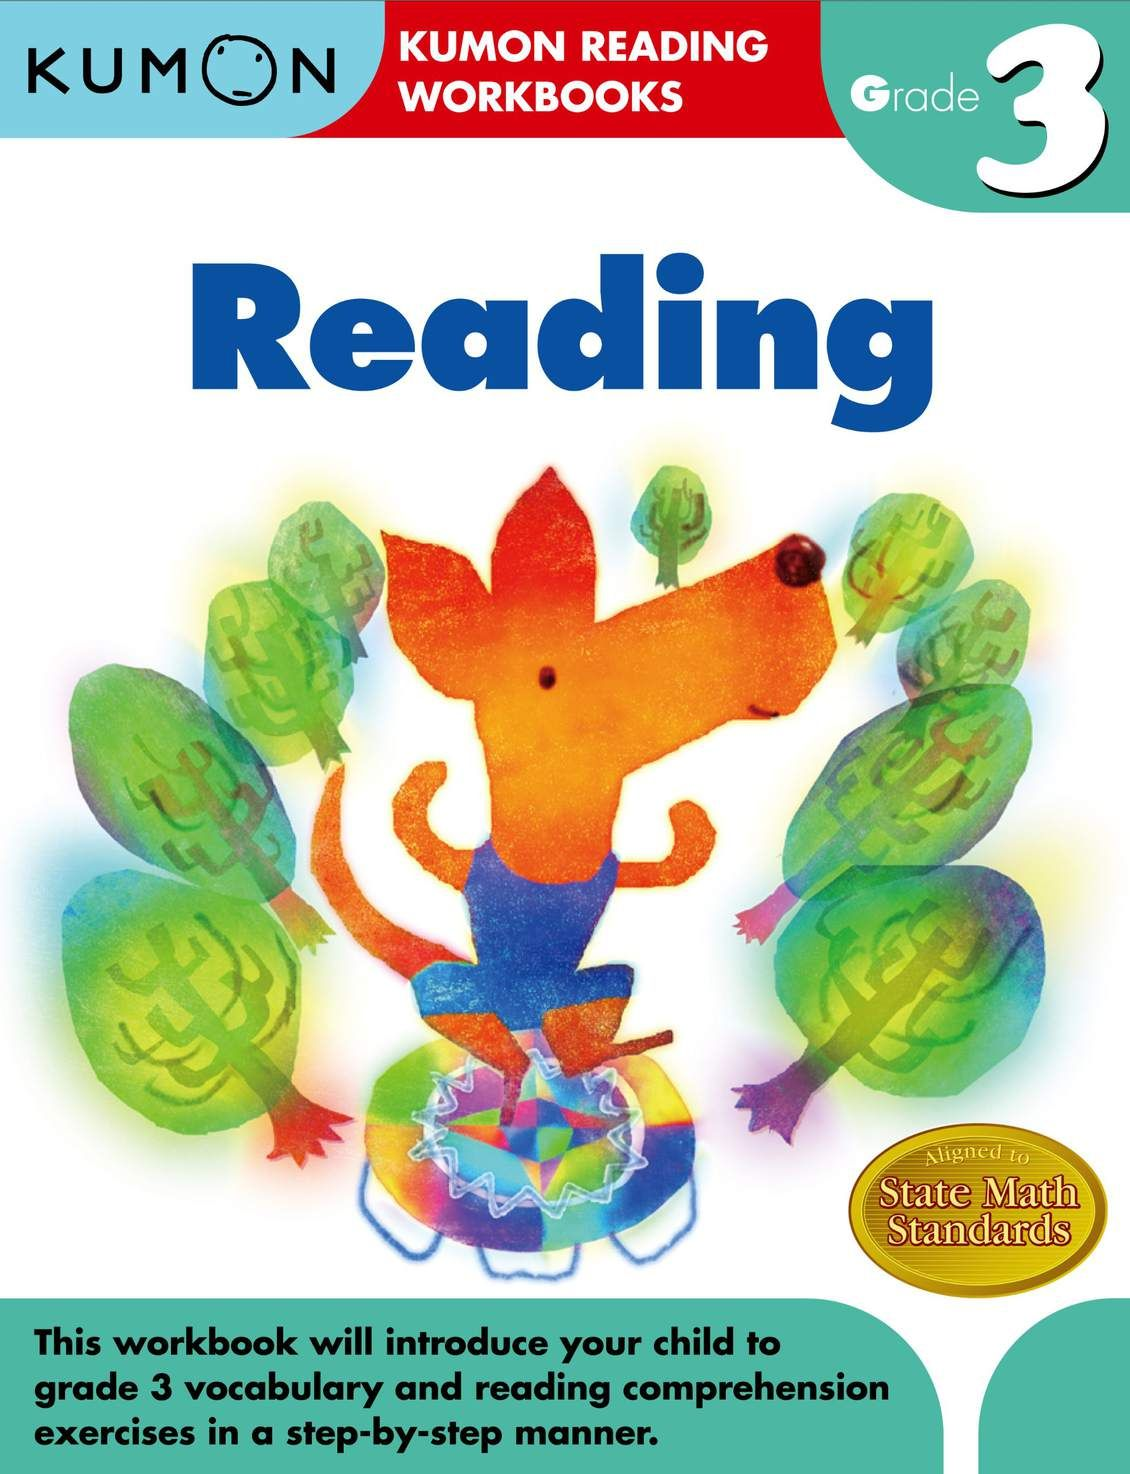 Third Grade Reading Comprehension Books With Images